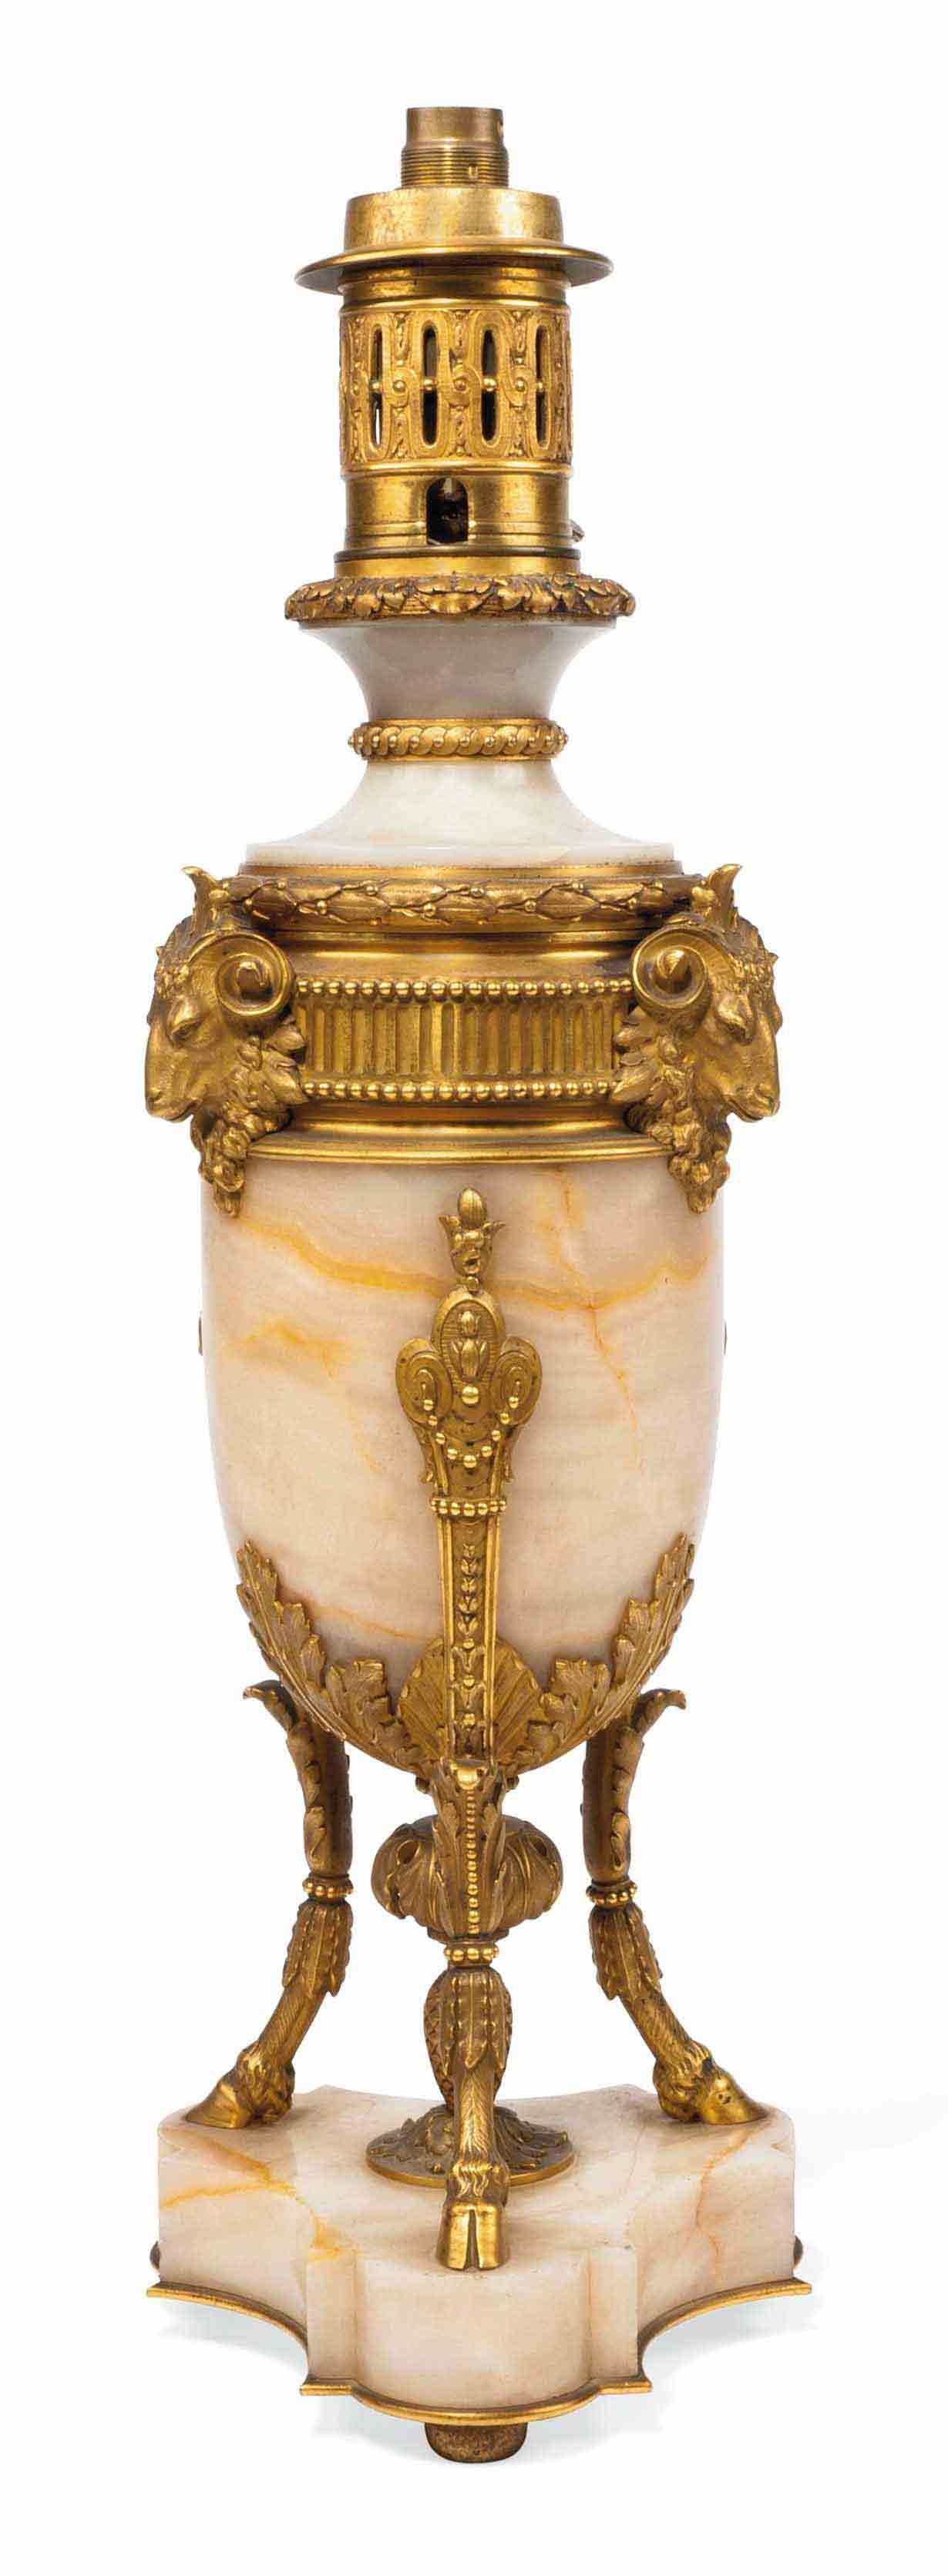 A FRENCH GILT-BRONZE MOUNTED ONYX TABLE LAMP